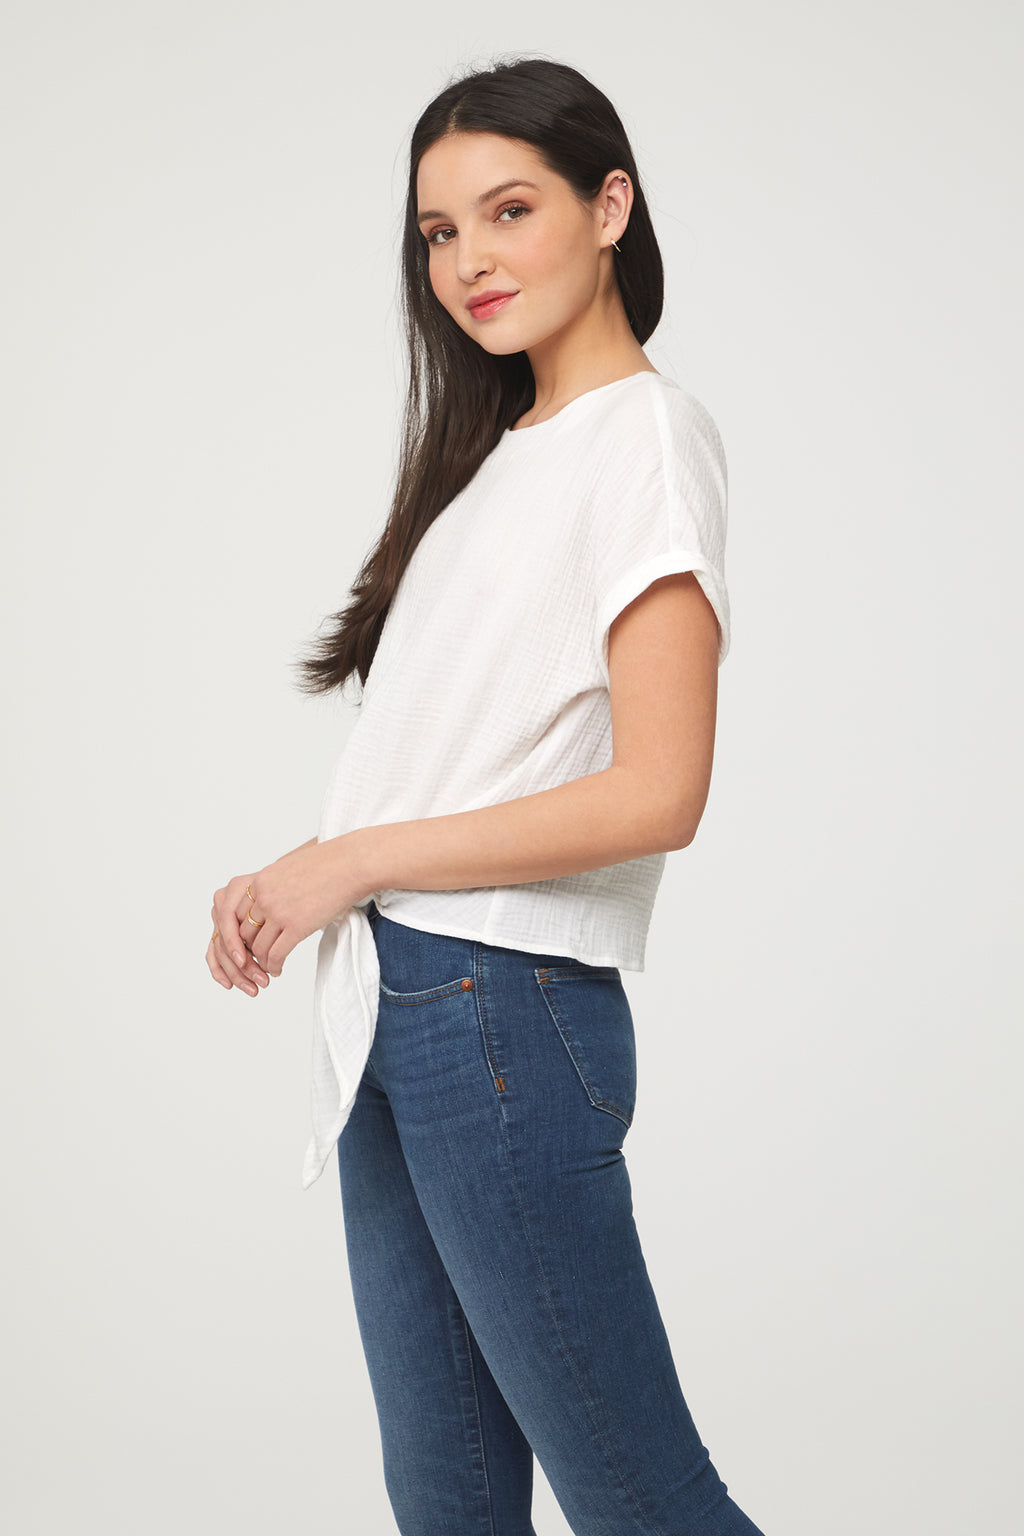 LUMI TOP - WHITE